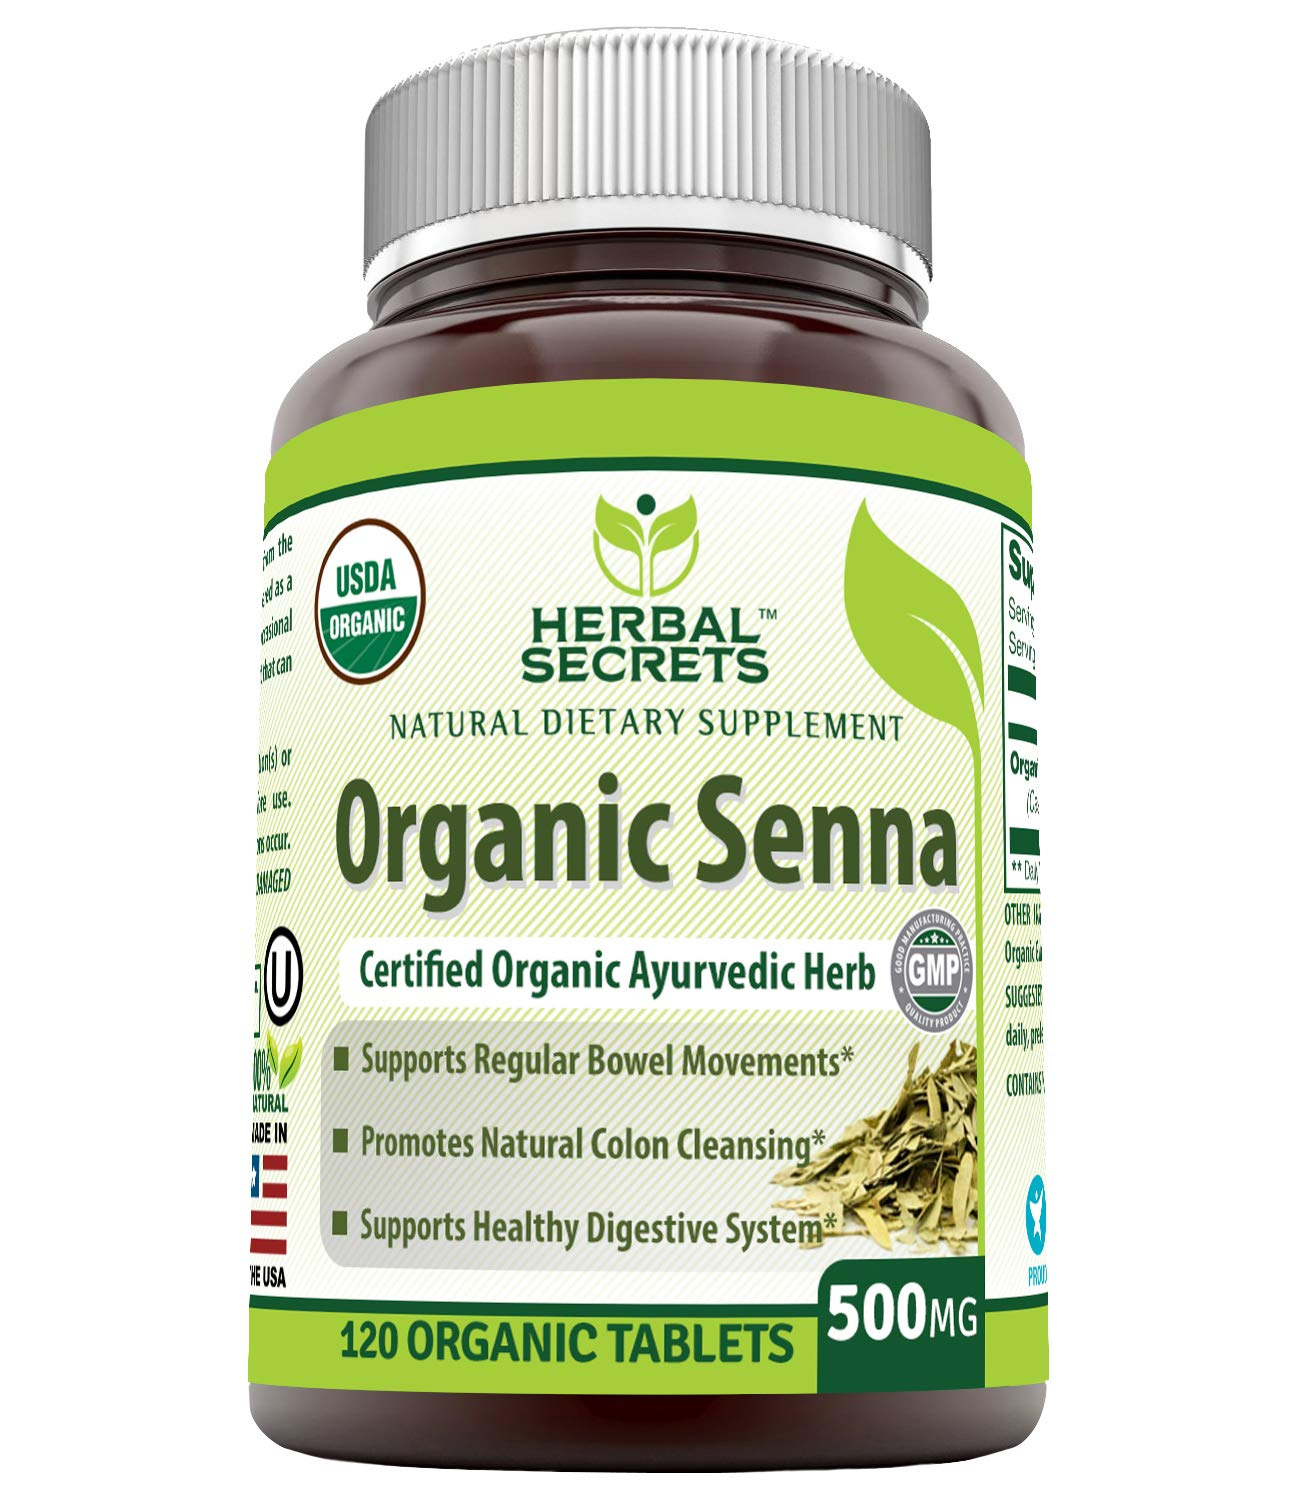 Check Out SennaProducts On Amazon!